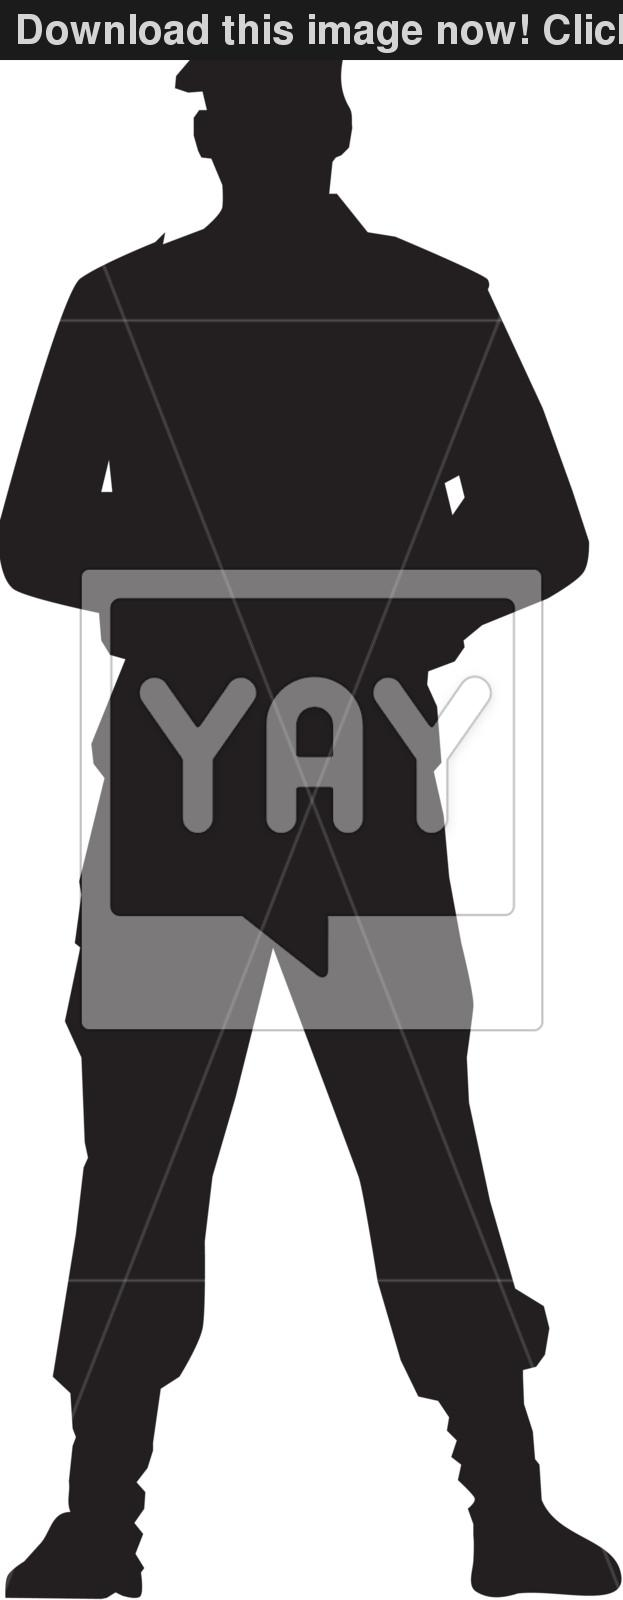 623x1600 Special Force Man In Beret. Vector Silhouette Vector